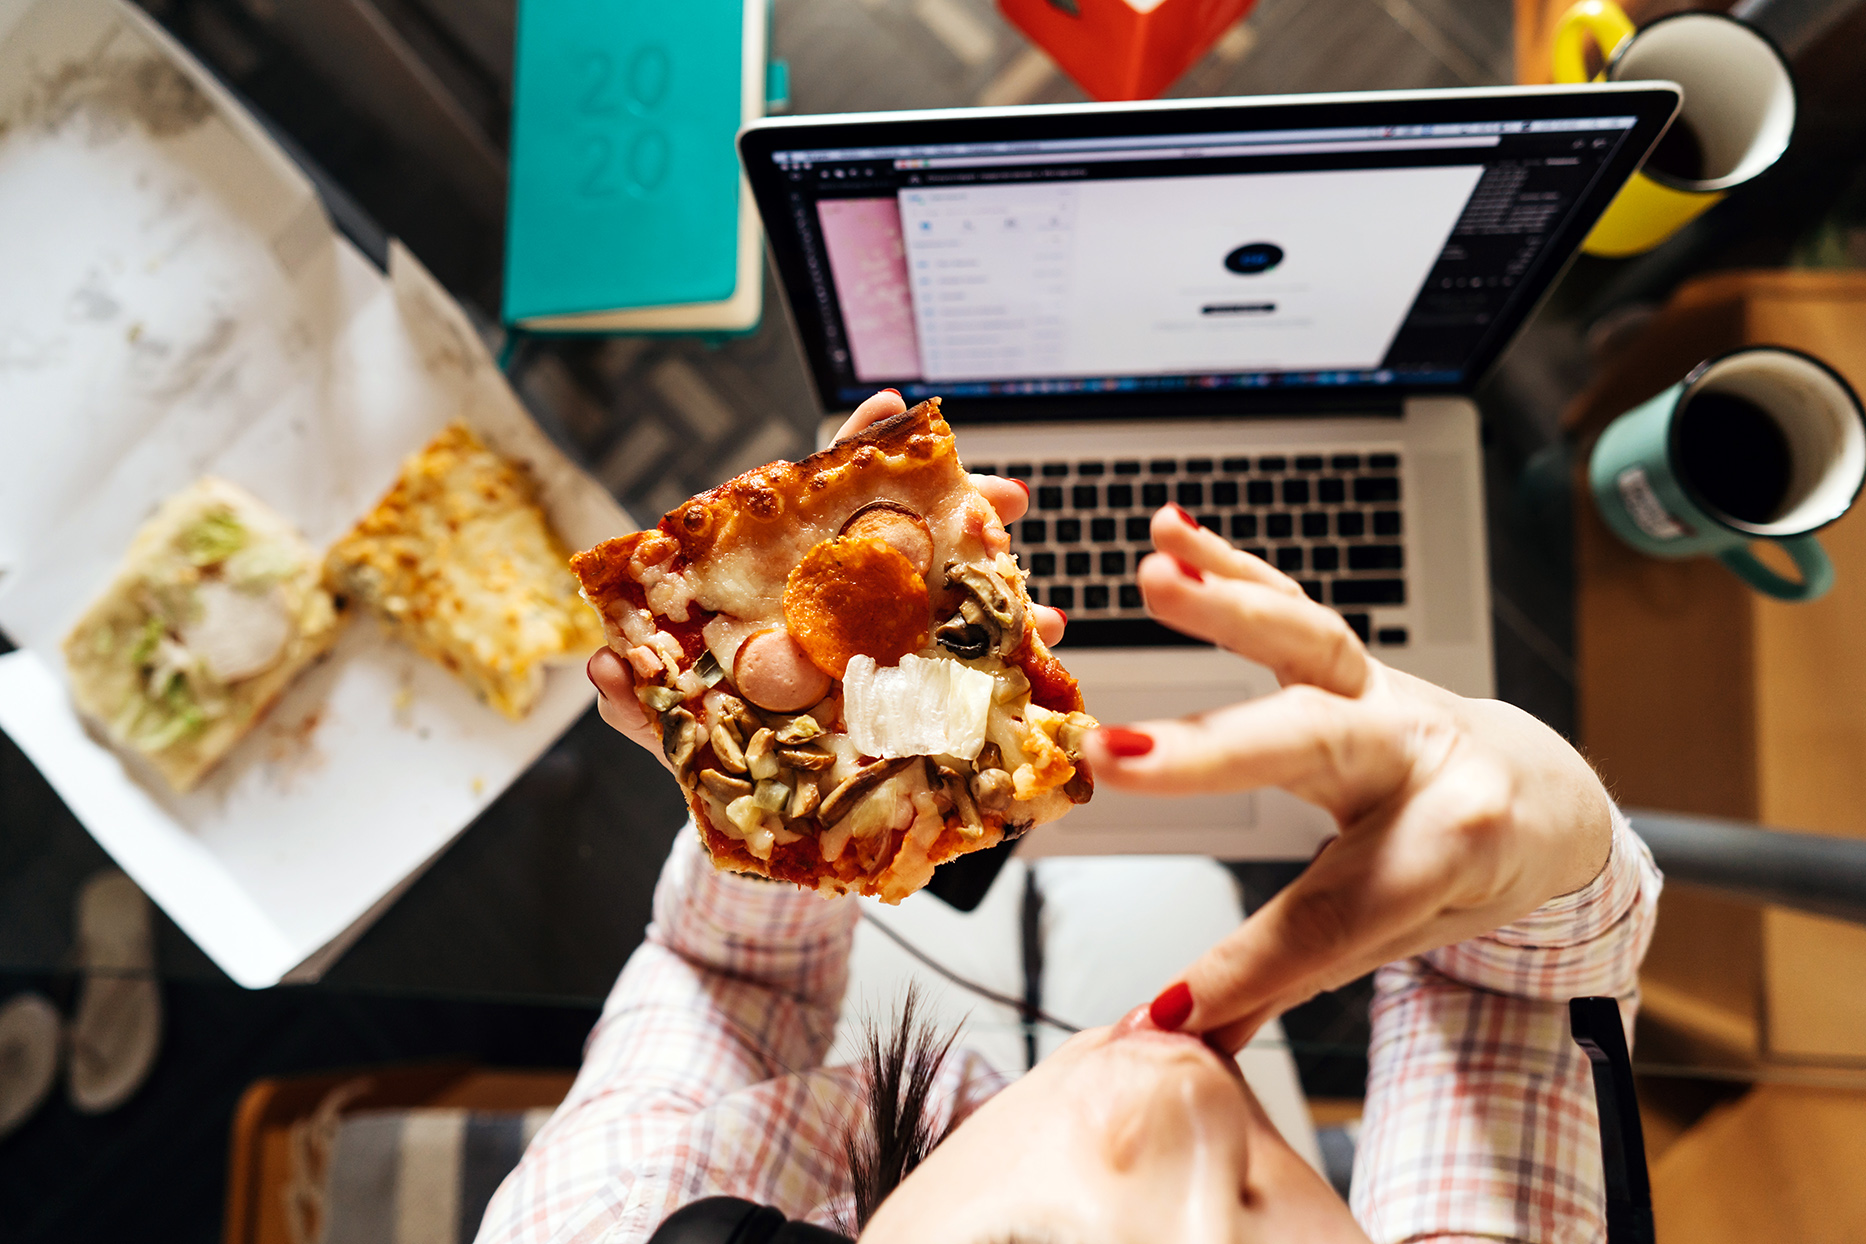 A middle-aged woman eating a slice of pizza while using laptop